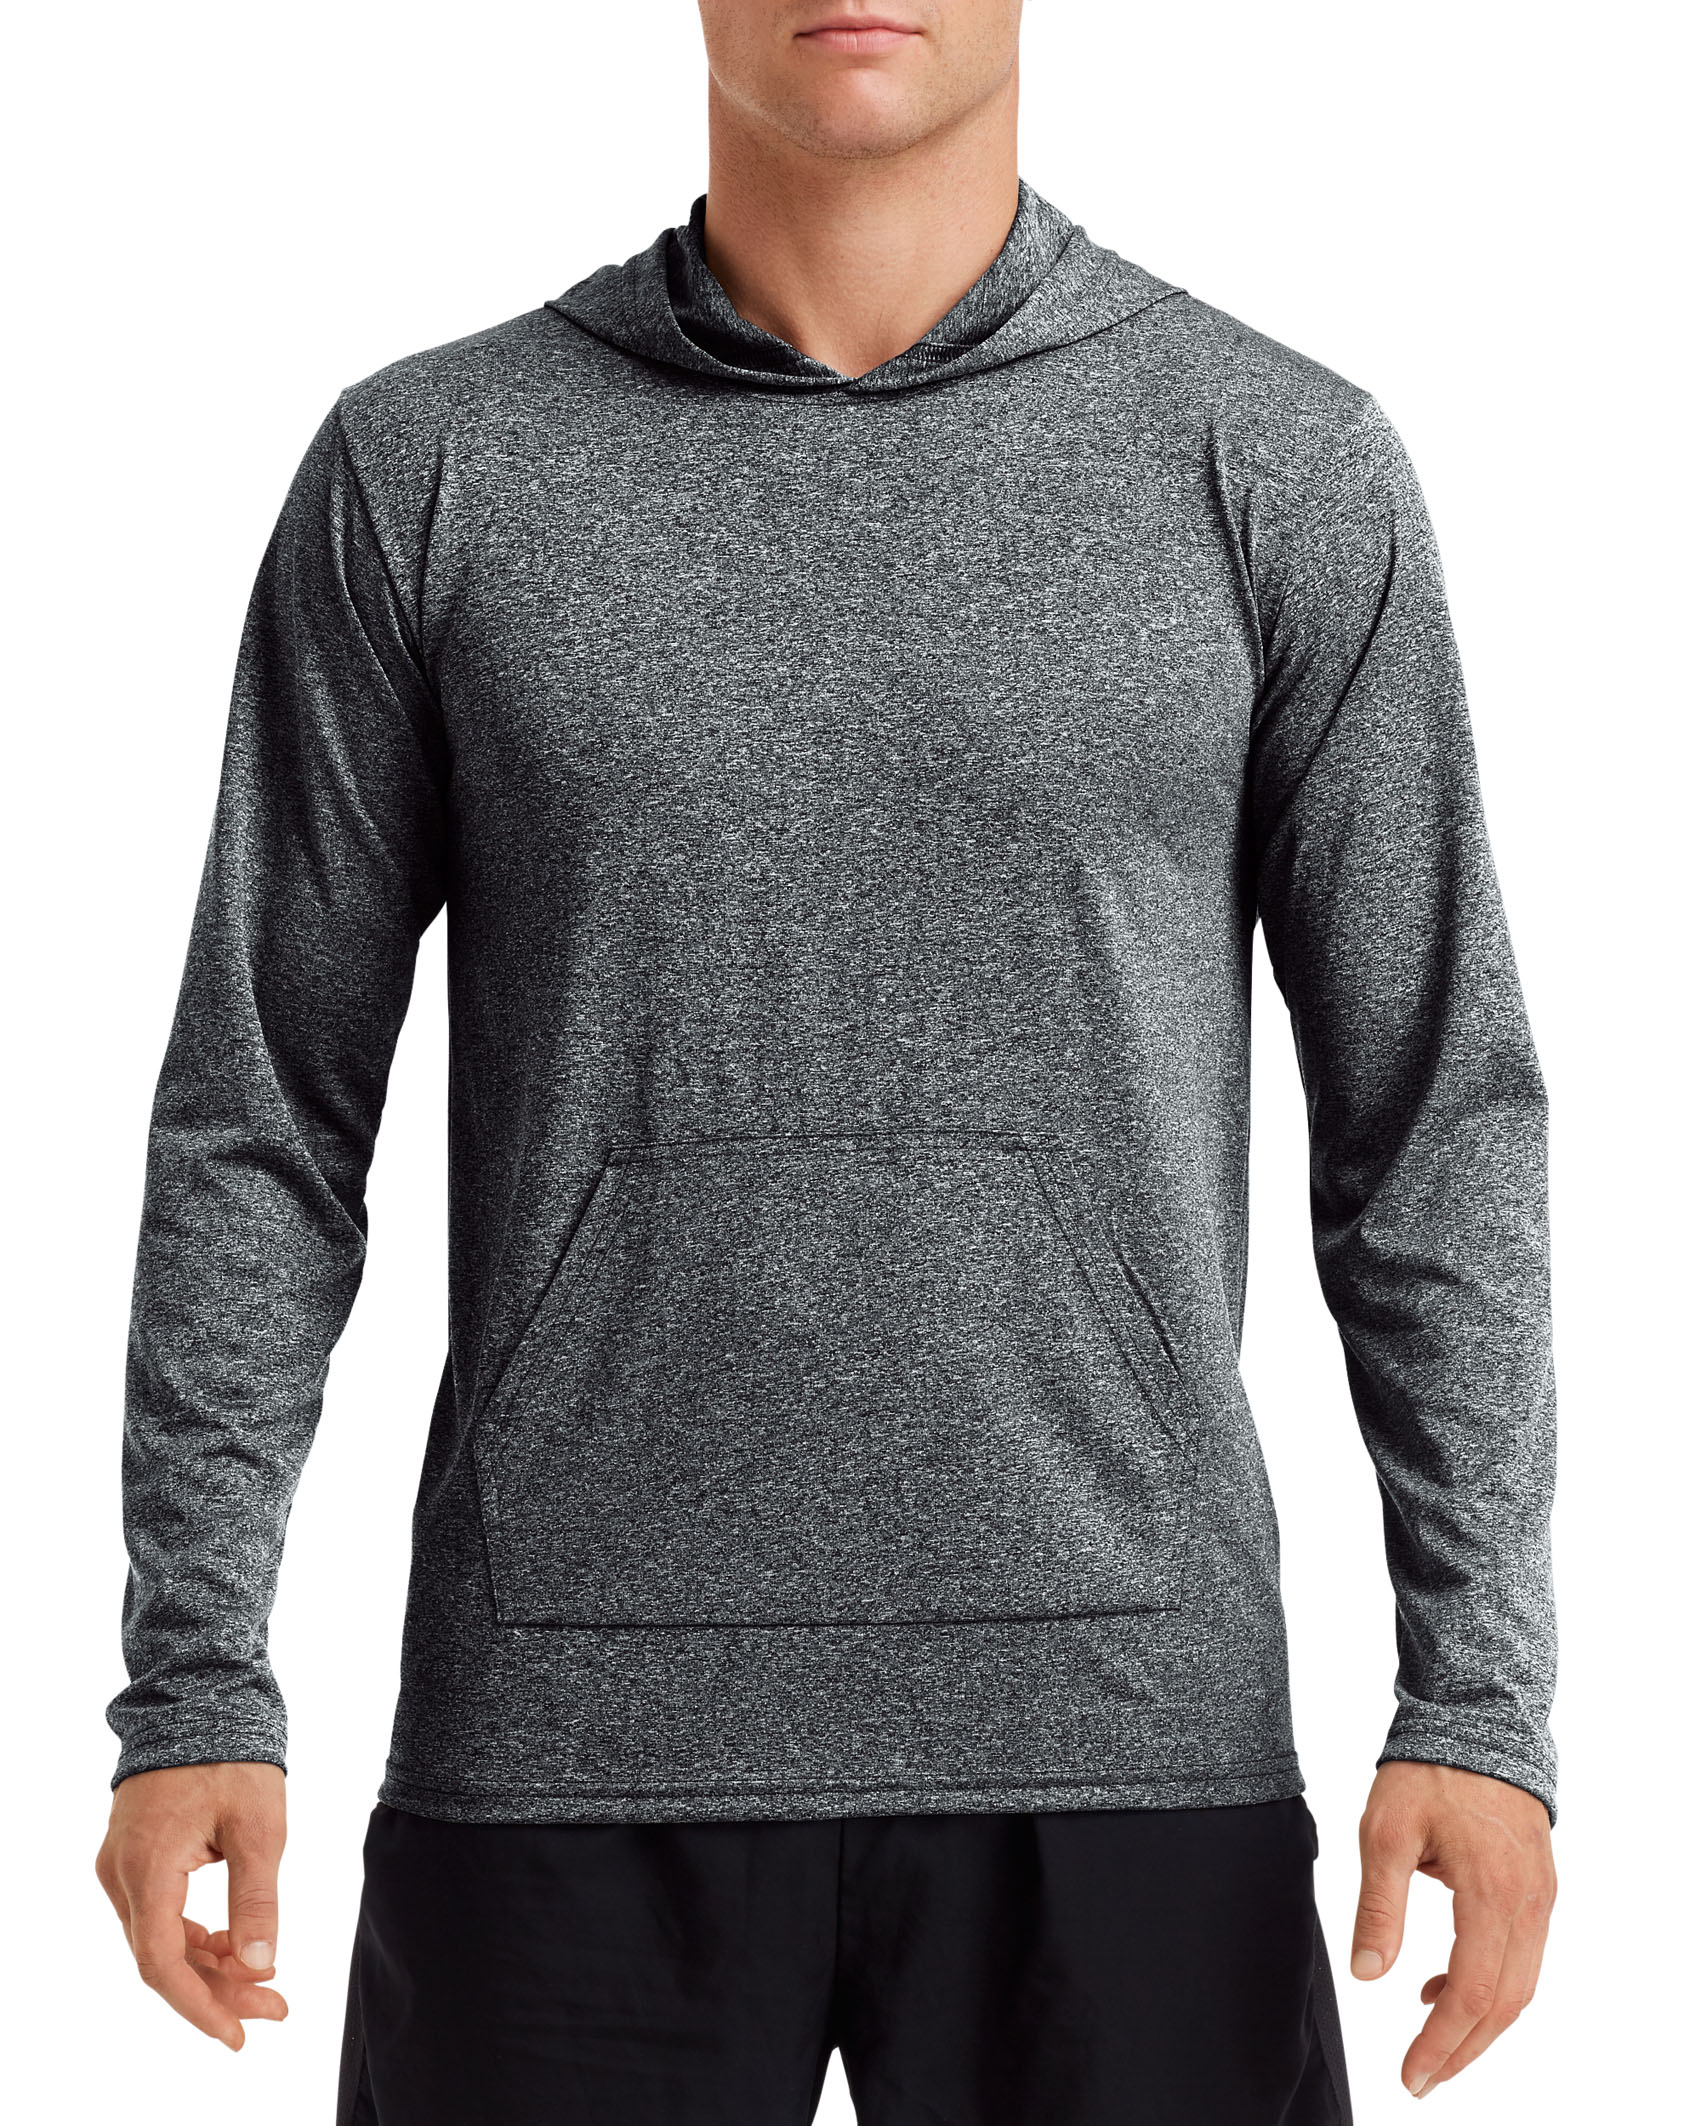 Gildan T-shirt Hooded Performance Adult LS